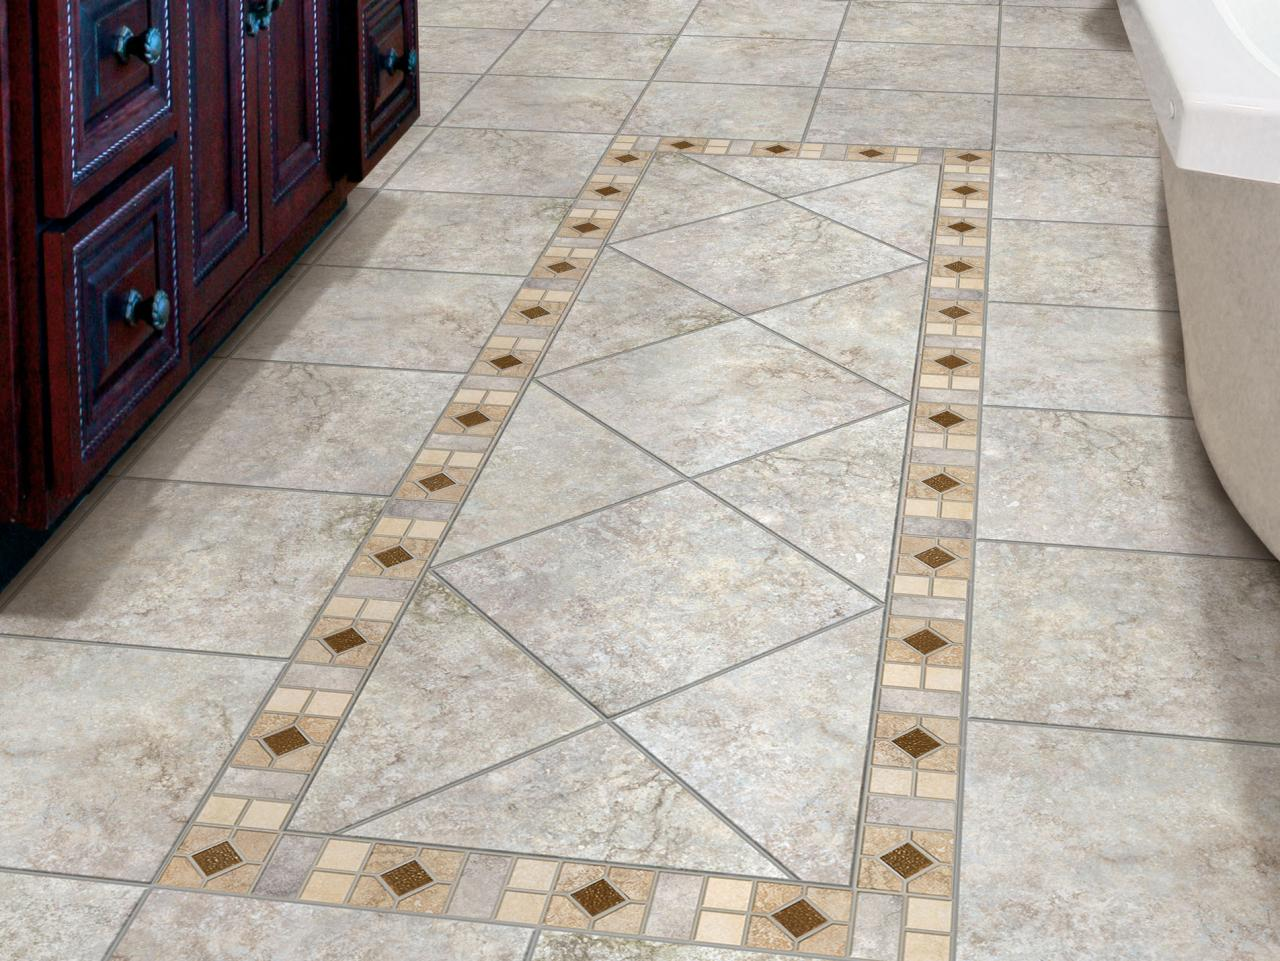 Reasons to choose porcelain tile hgtv reasons to choose porcelain tile dailygadgetfo Gallery